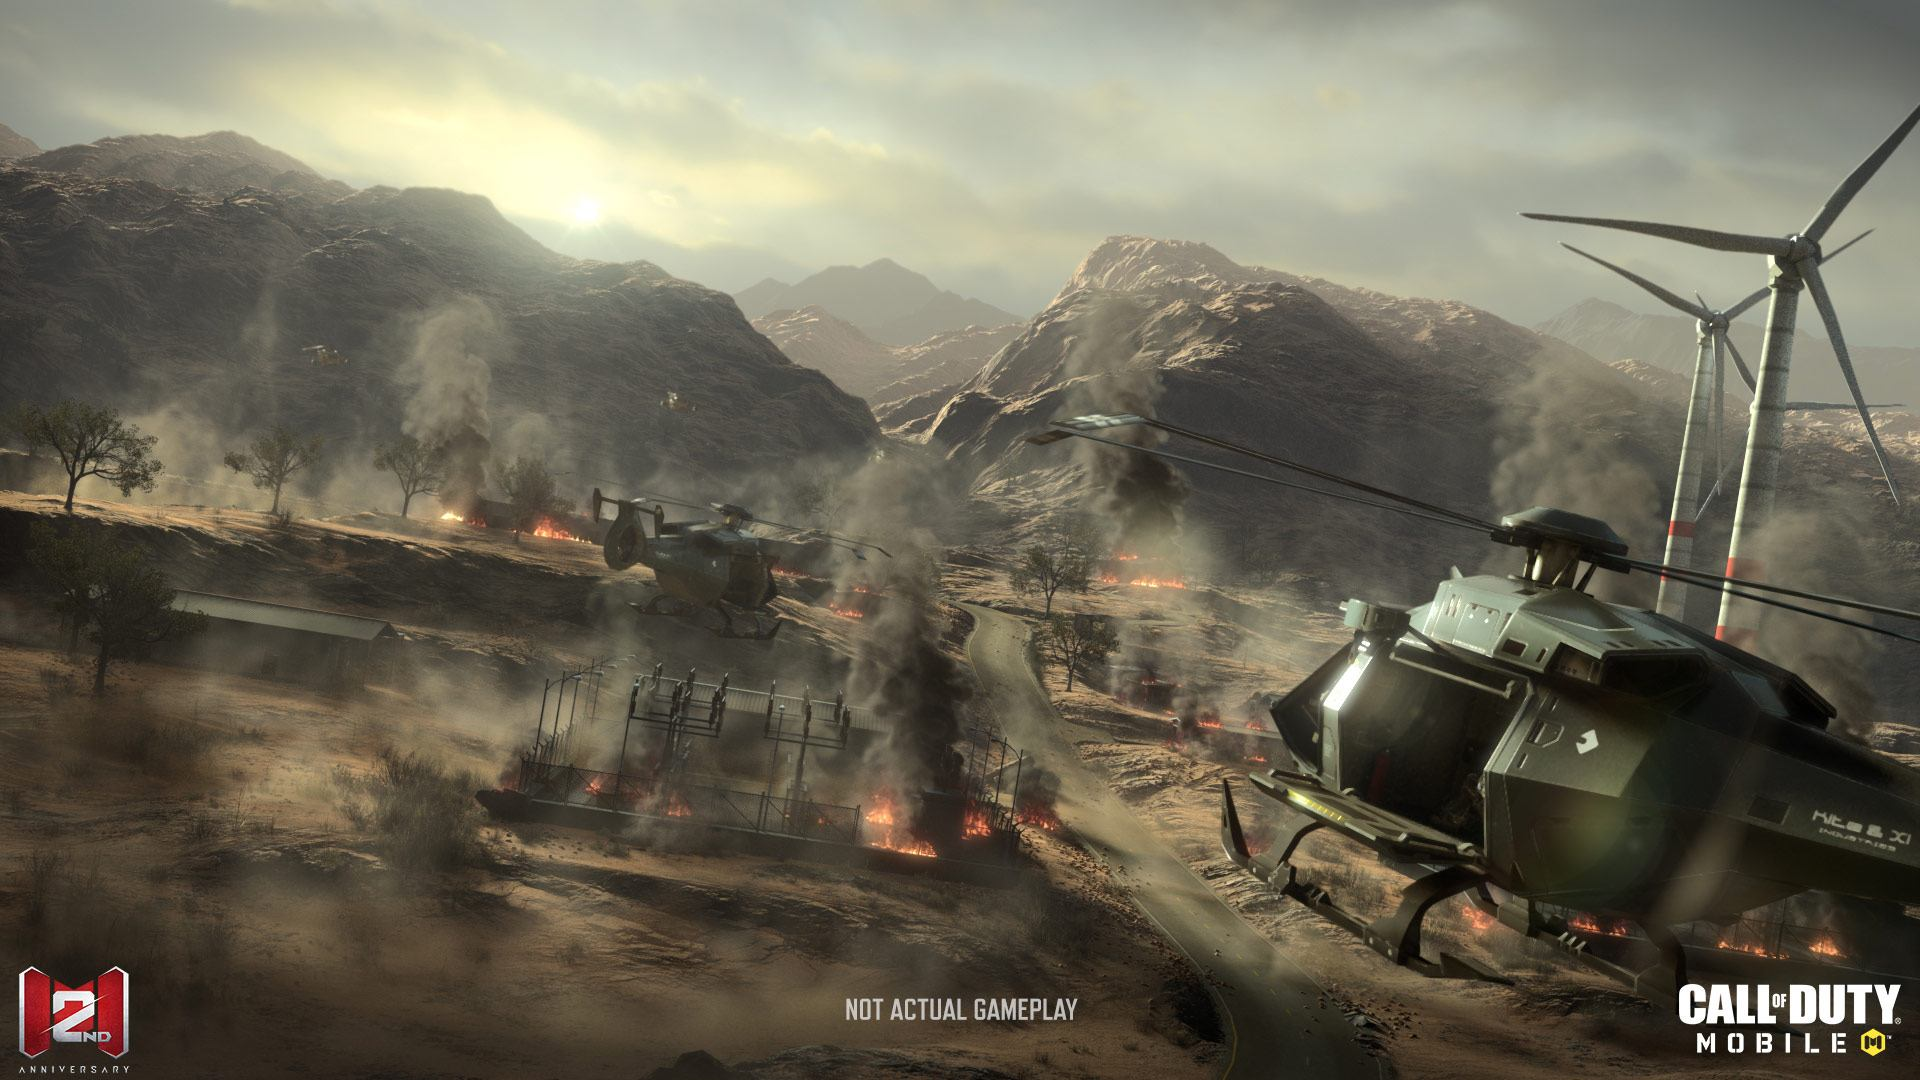 Call of Duty: Mobile Introduces Blackout Map in Battle Royale